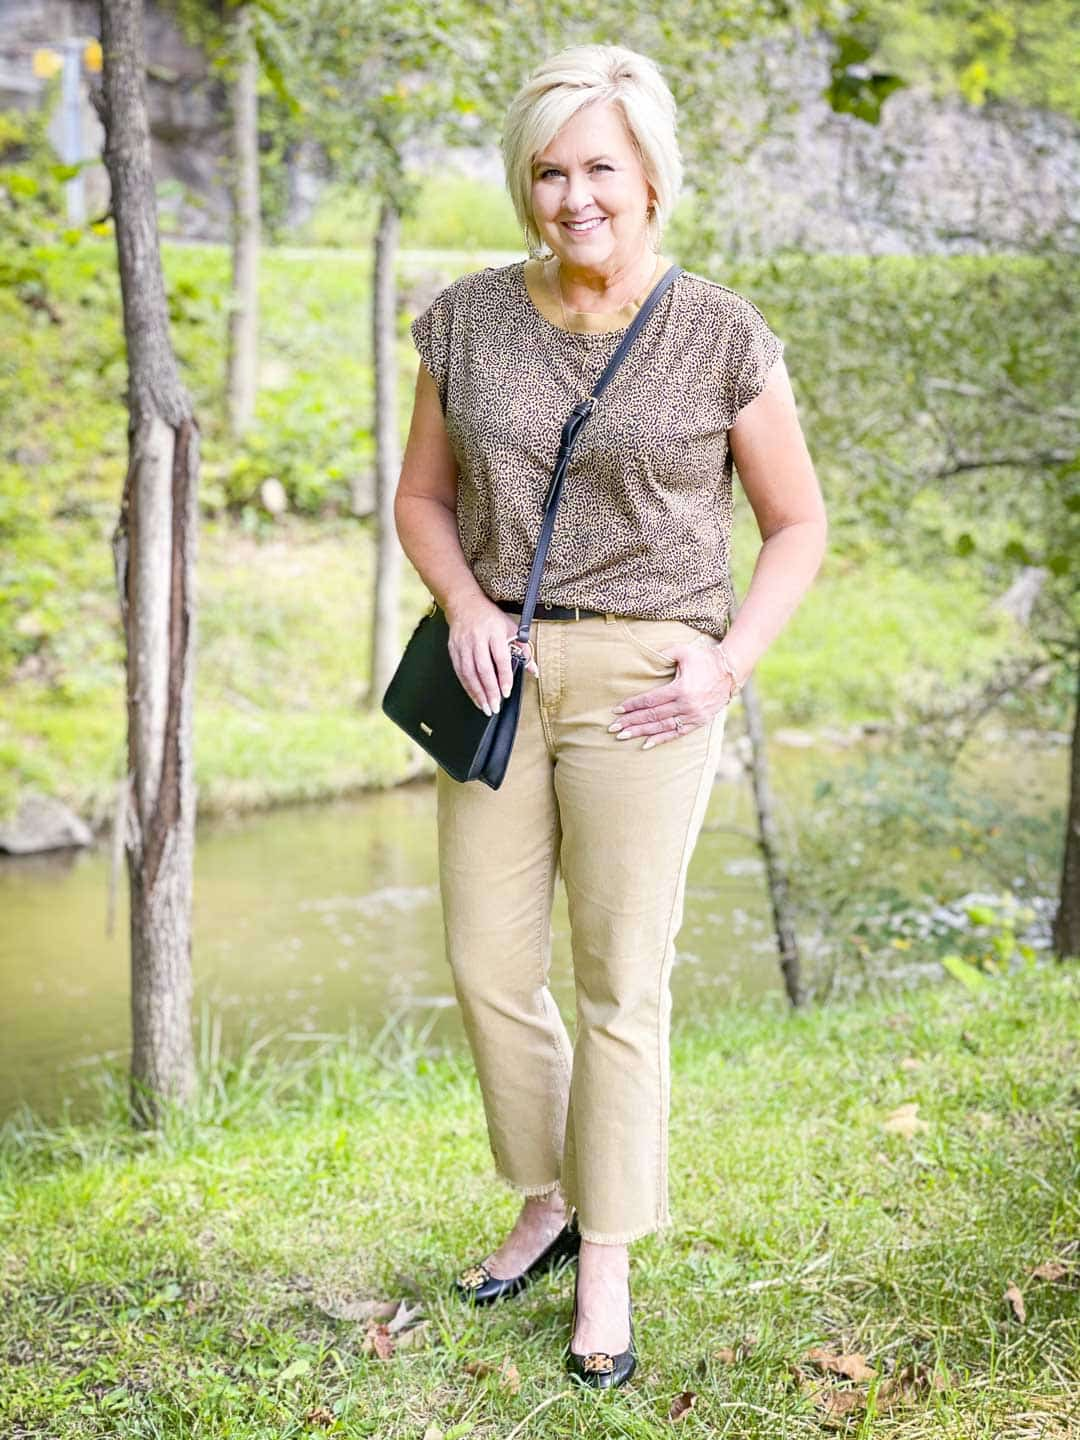 Over 40 Fashion Blogger, Tania Stephens is wearing animal print for fall, cropped jeans, and a black crossbody handbag